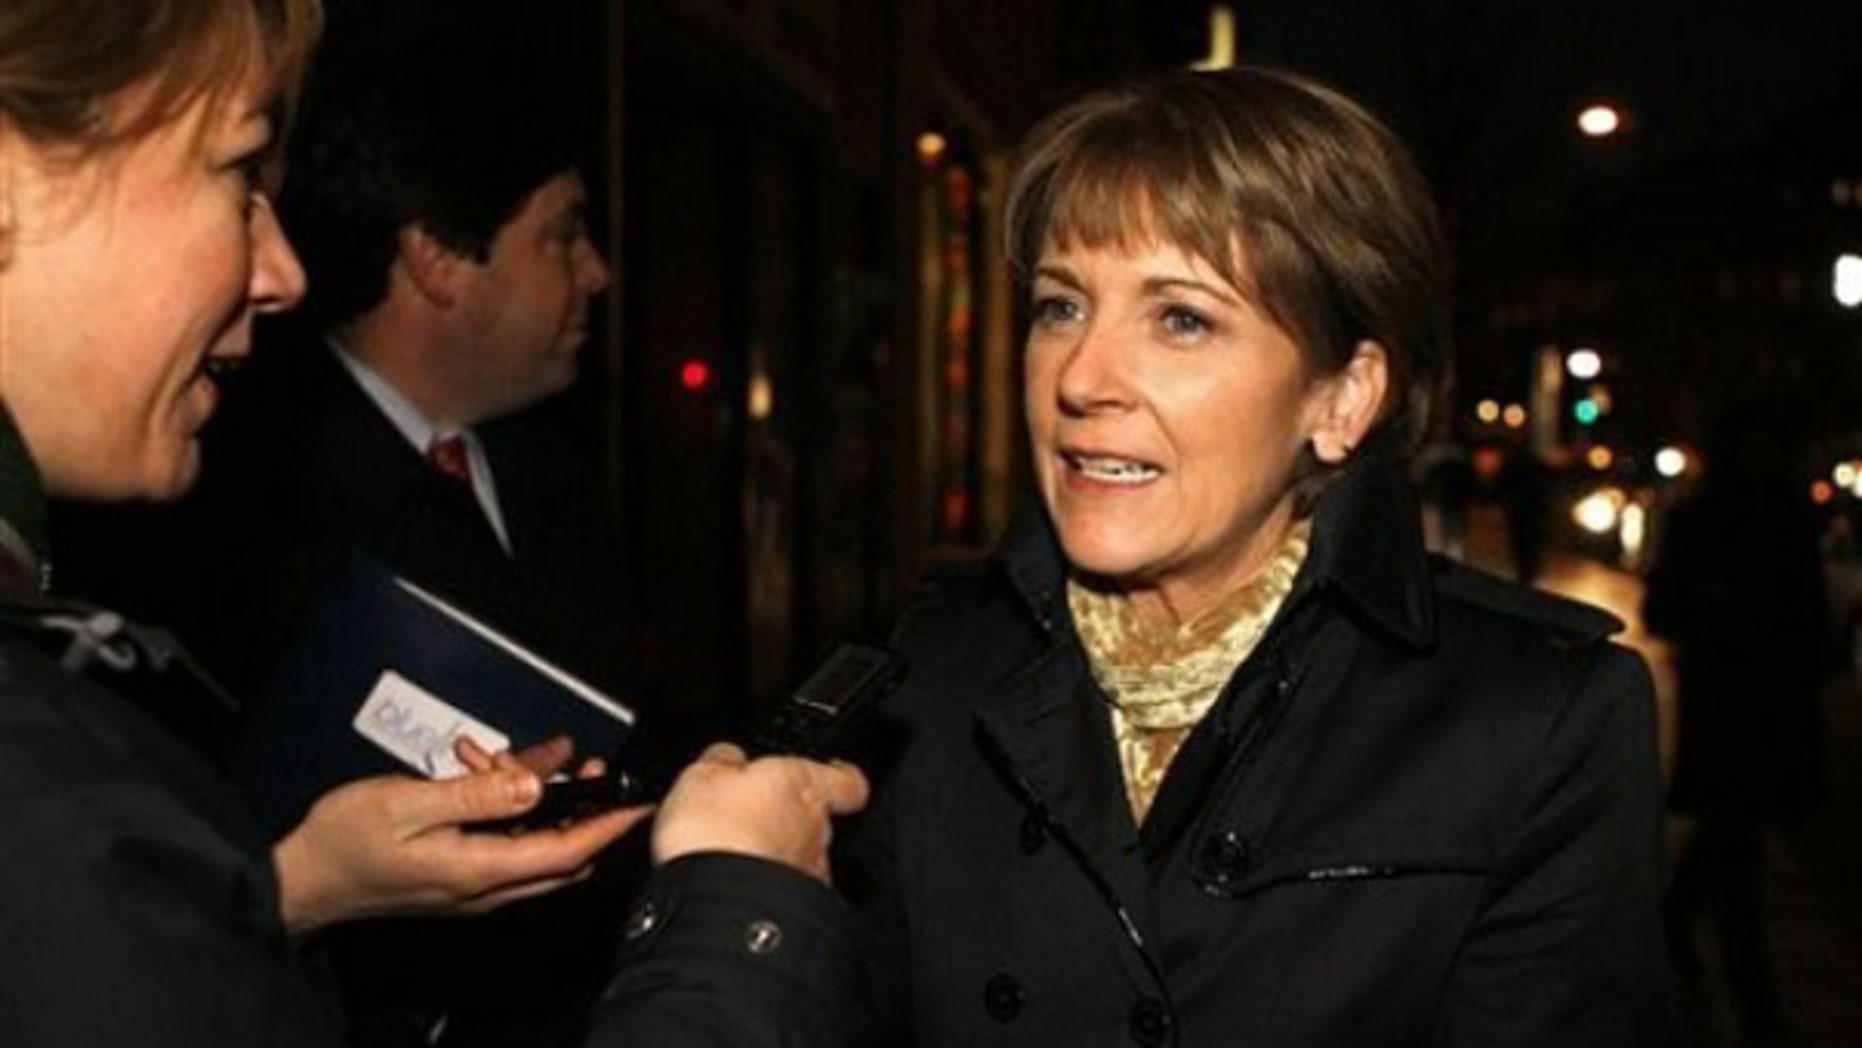 Democrat Martha Coakley speaks with reporters as she arrives at a fundraiser in Washington Jan. 12. (AP Photo)